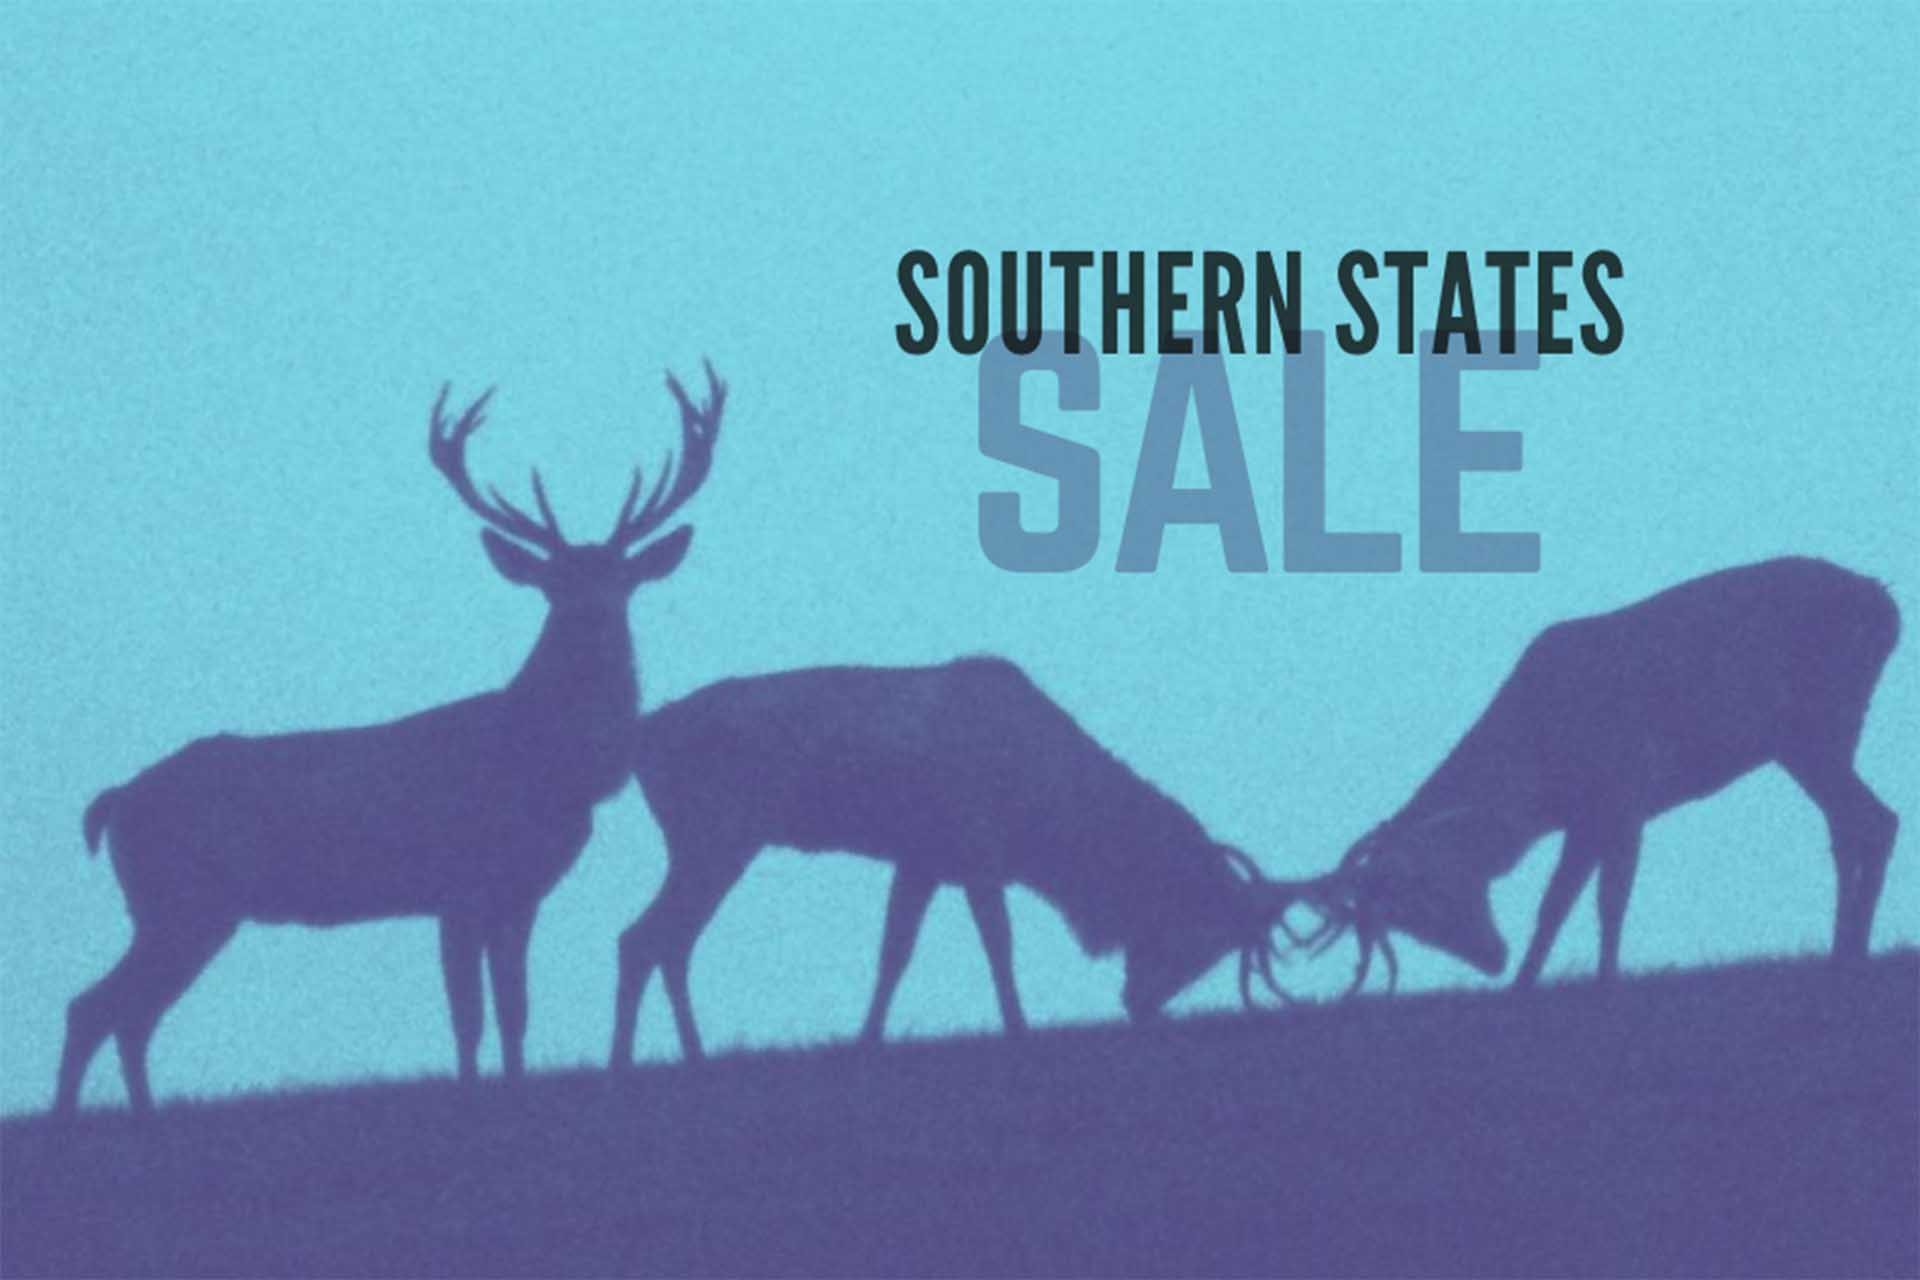 From game cameras to deer feeders, everything you need for the upcoming season is on sale now at Southern States